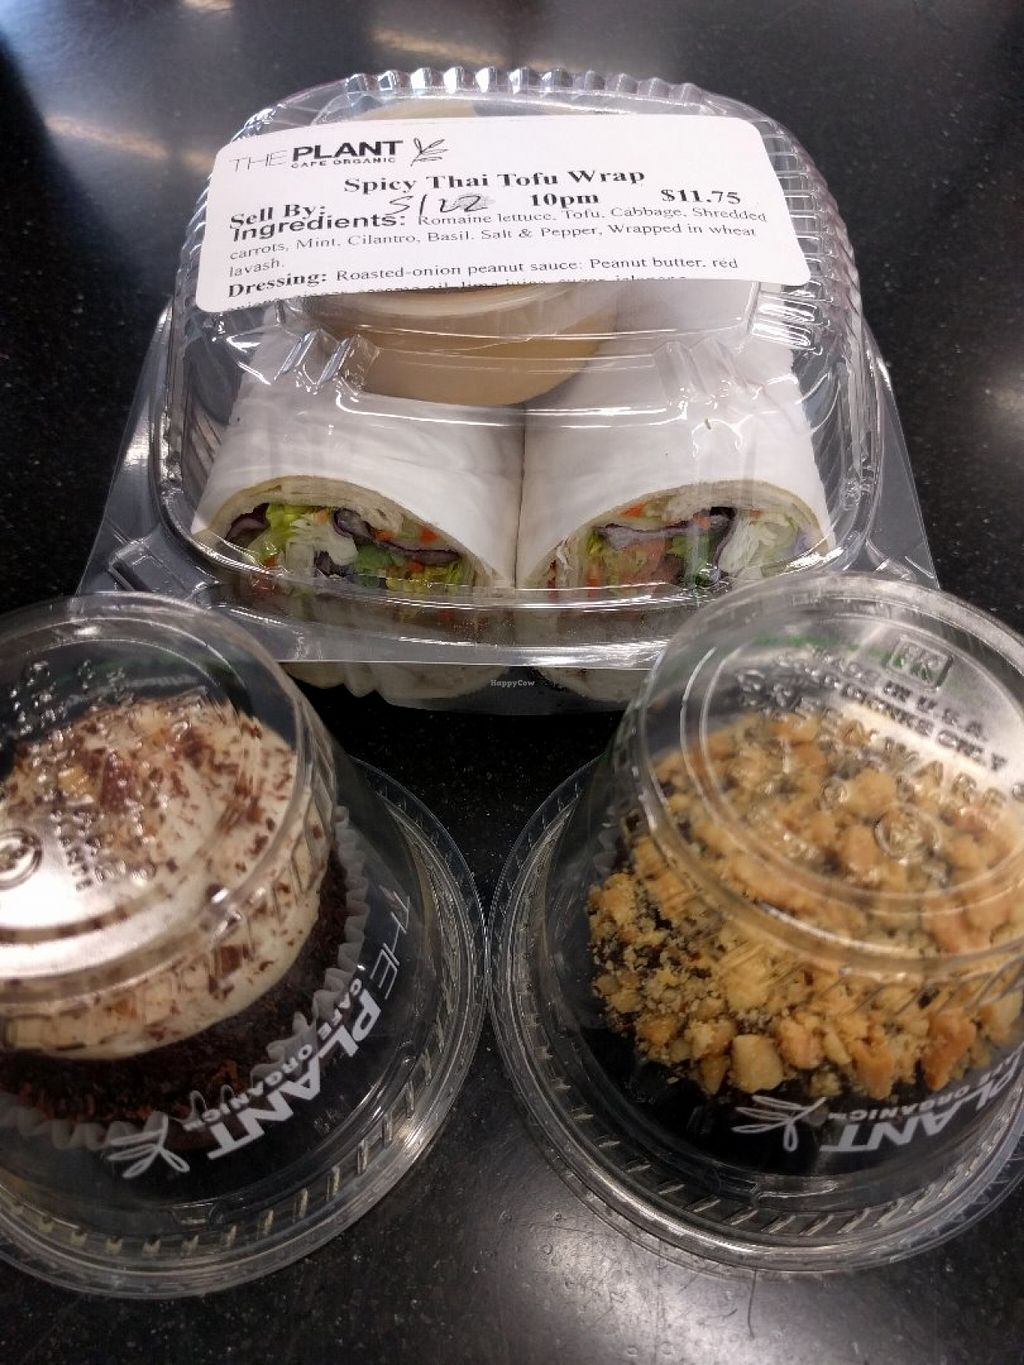 """Photo of SFO - The Plant Organic Cafe - T2  by <a href=""""/members/profile/Sonja%20and%20Dirk"""">Sonja and Dirk</a> <br/>Thai wrap and cupcakes <br/> June 3, 2016  - <a href='/contact/abuse/image/29127/151988'>Report</a>"""